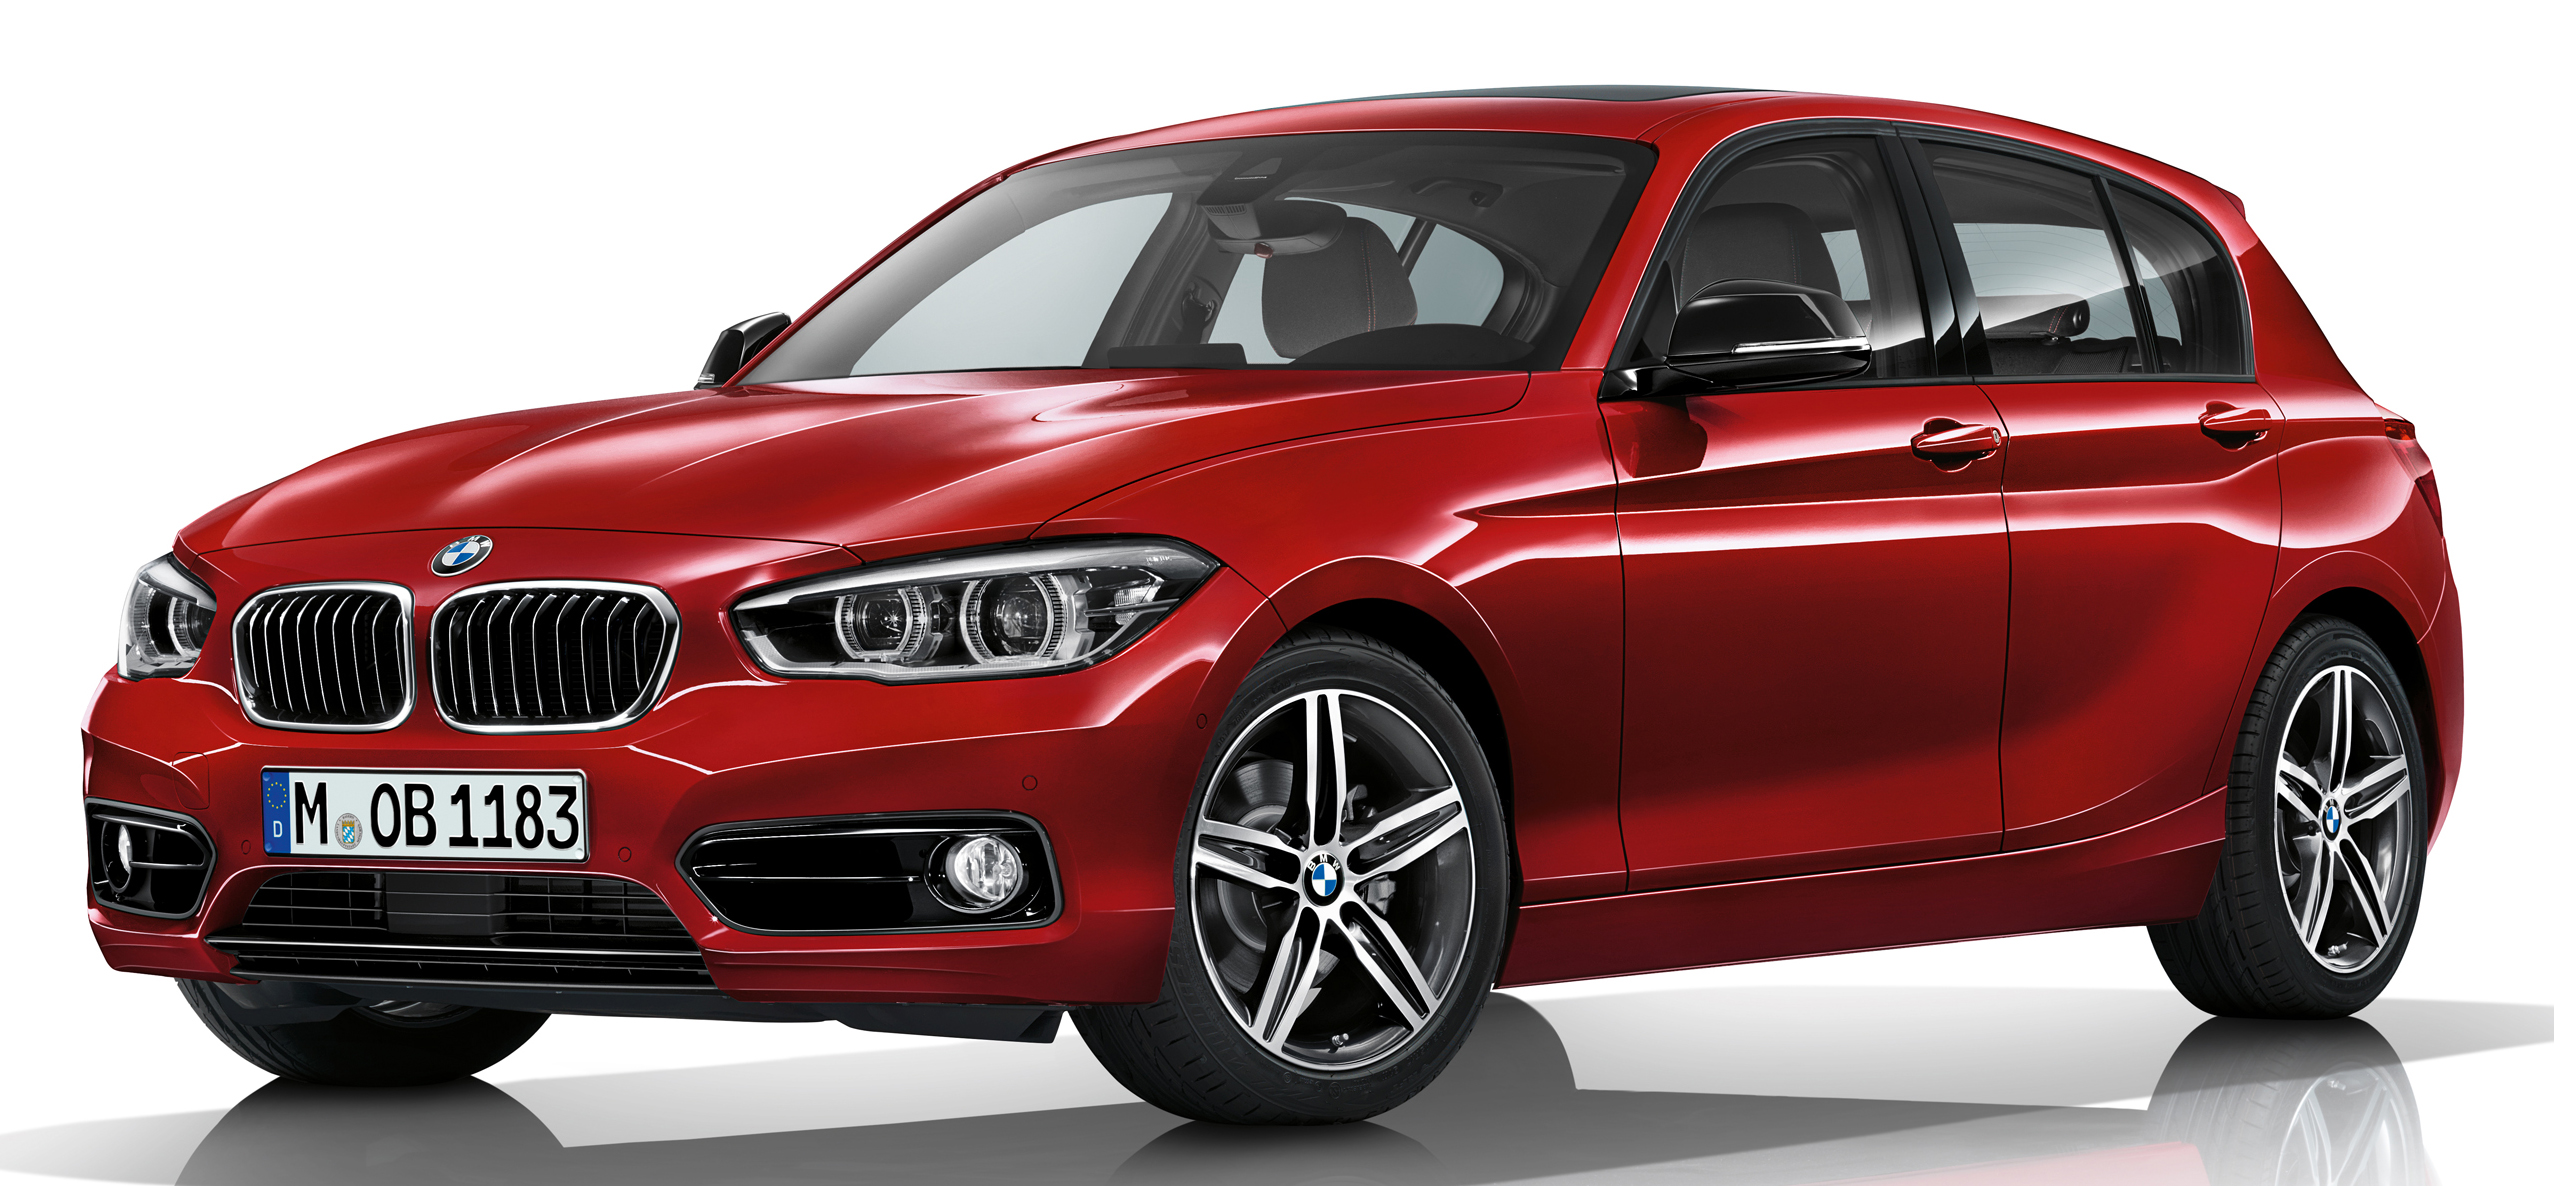 BMW 1 Series facelift coming to Malaysia this year